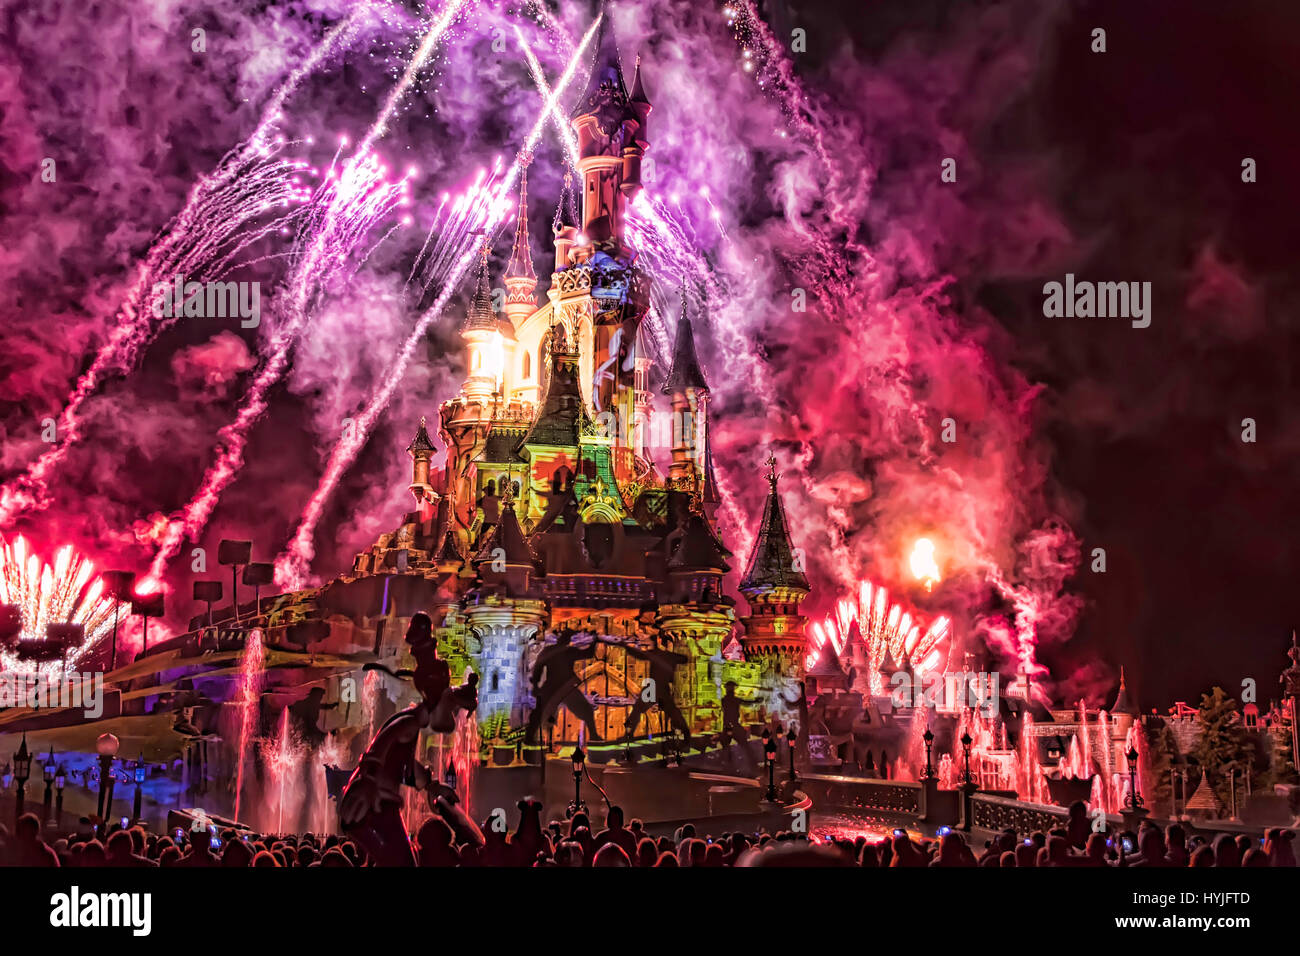 Marne-la-Vallée, France. 4th April, 2017. Disneyland Paris presents its new night show Disney Illuminations - Stock Image